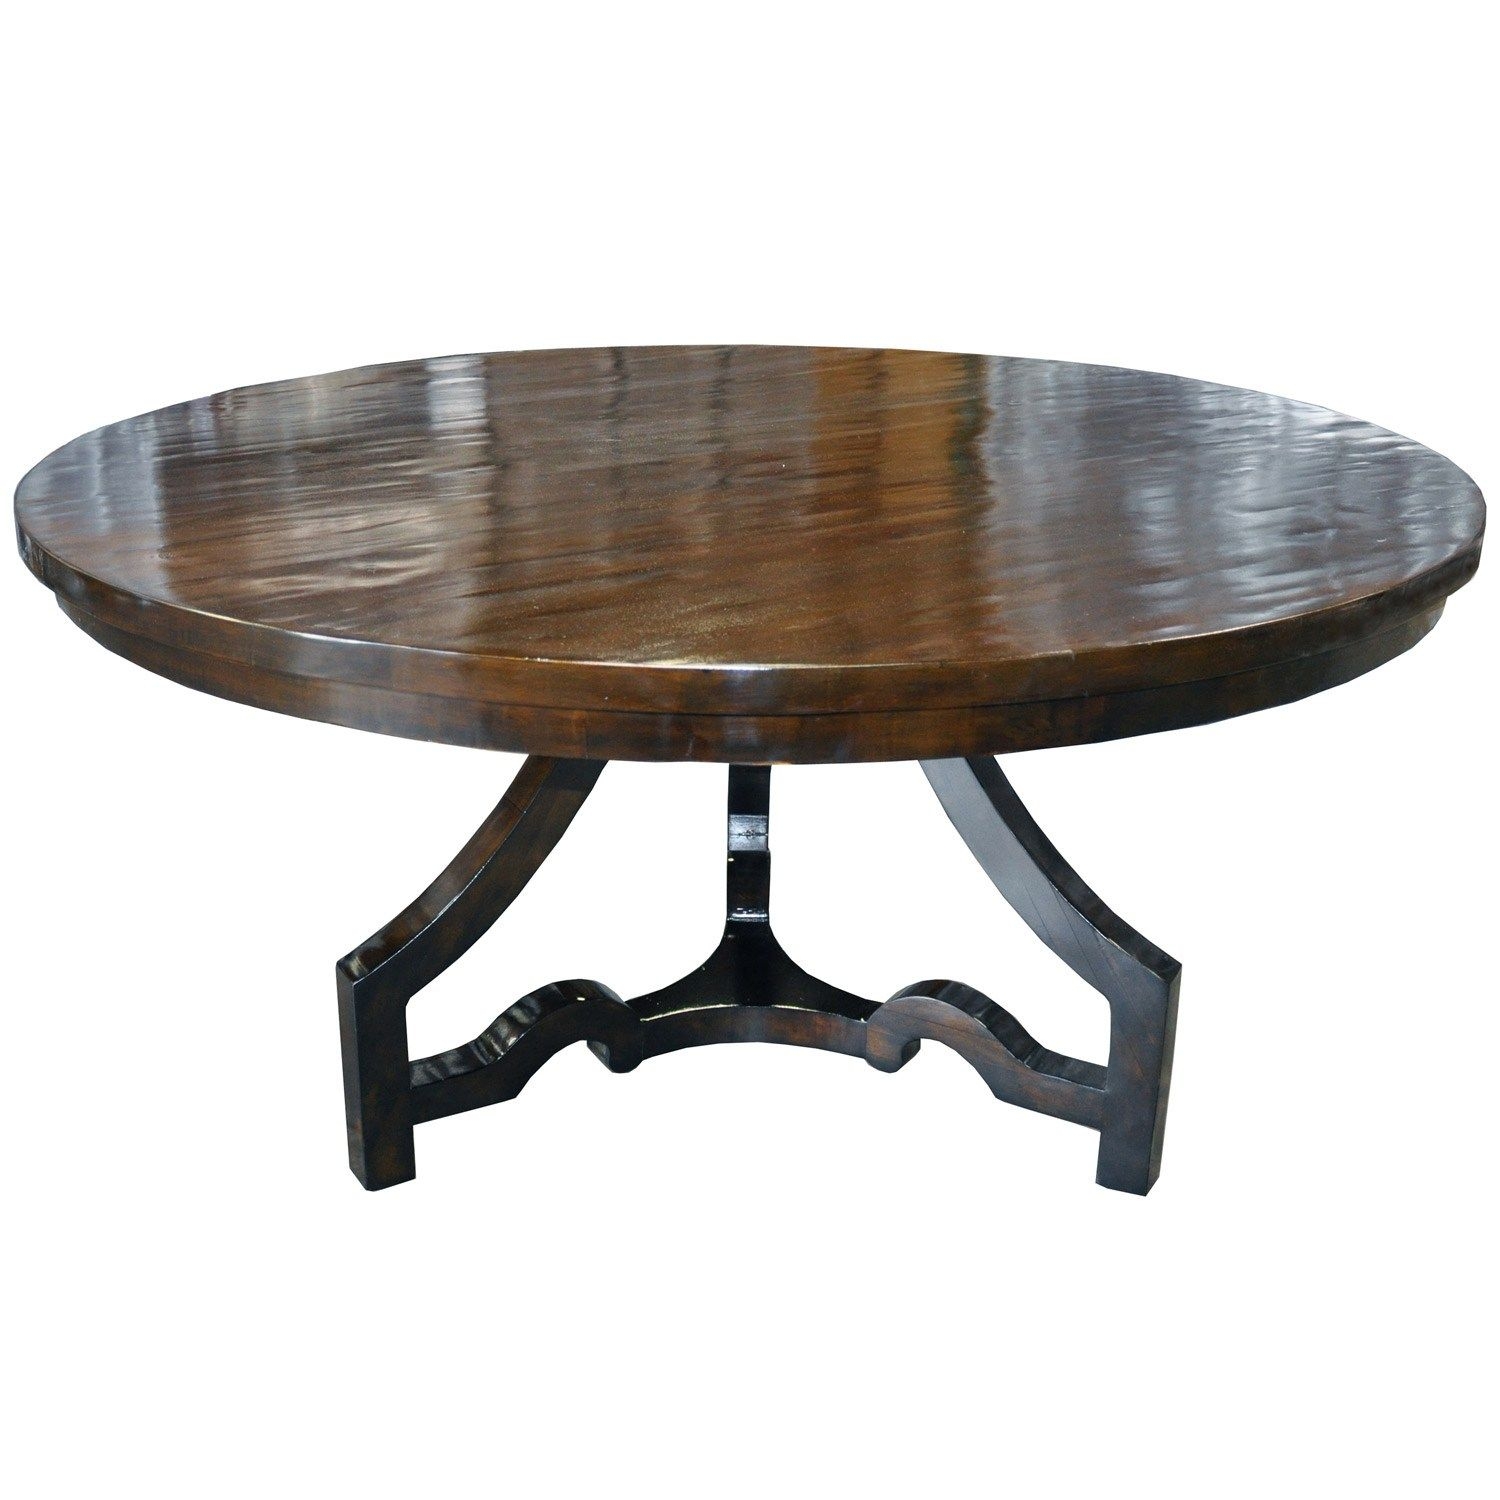 Breakfast: 1896 Noir 3 Leg Round Dining Table Distressed Brown